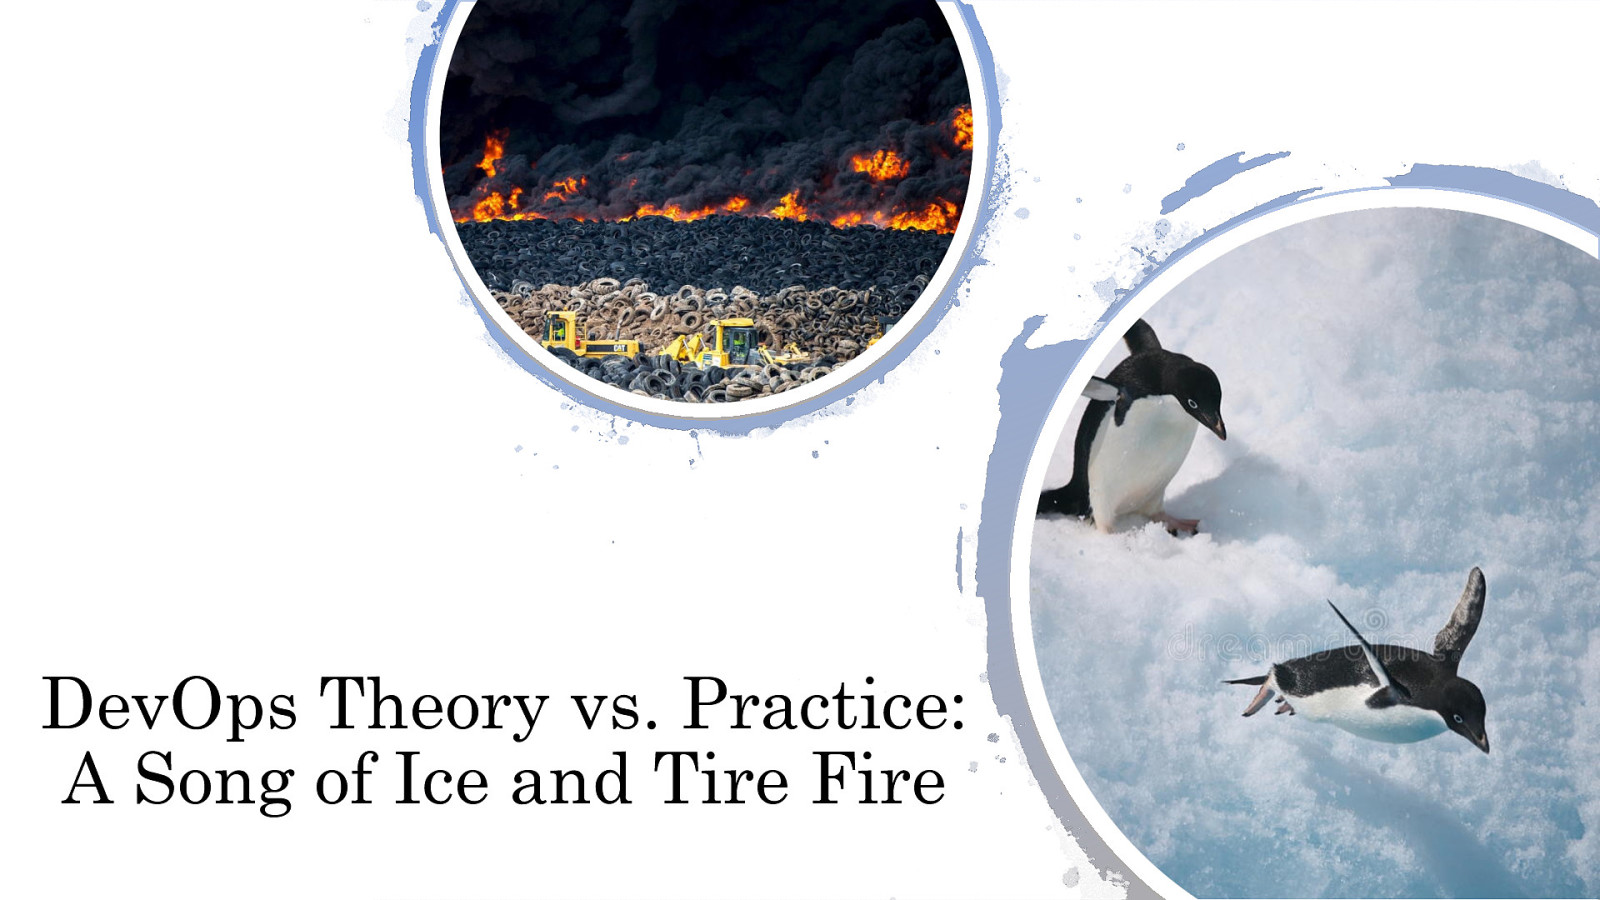 DevOps Theory vs. Practice: A Song of Ice and TireFire